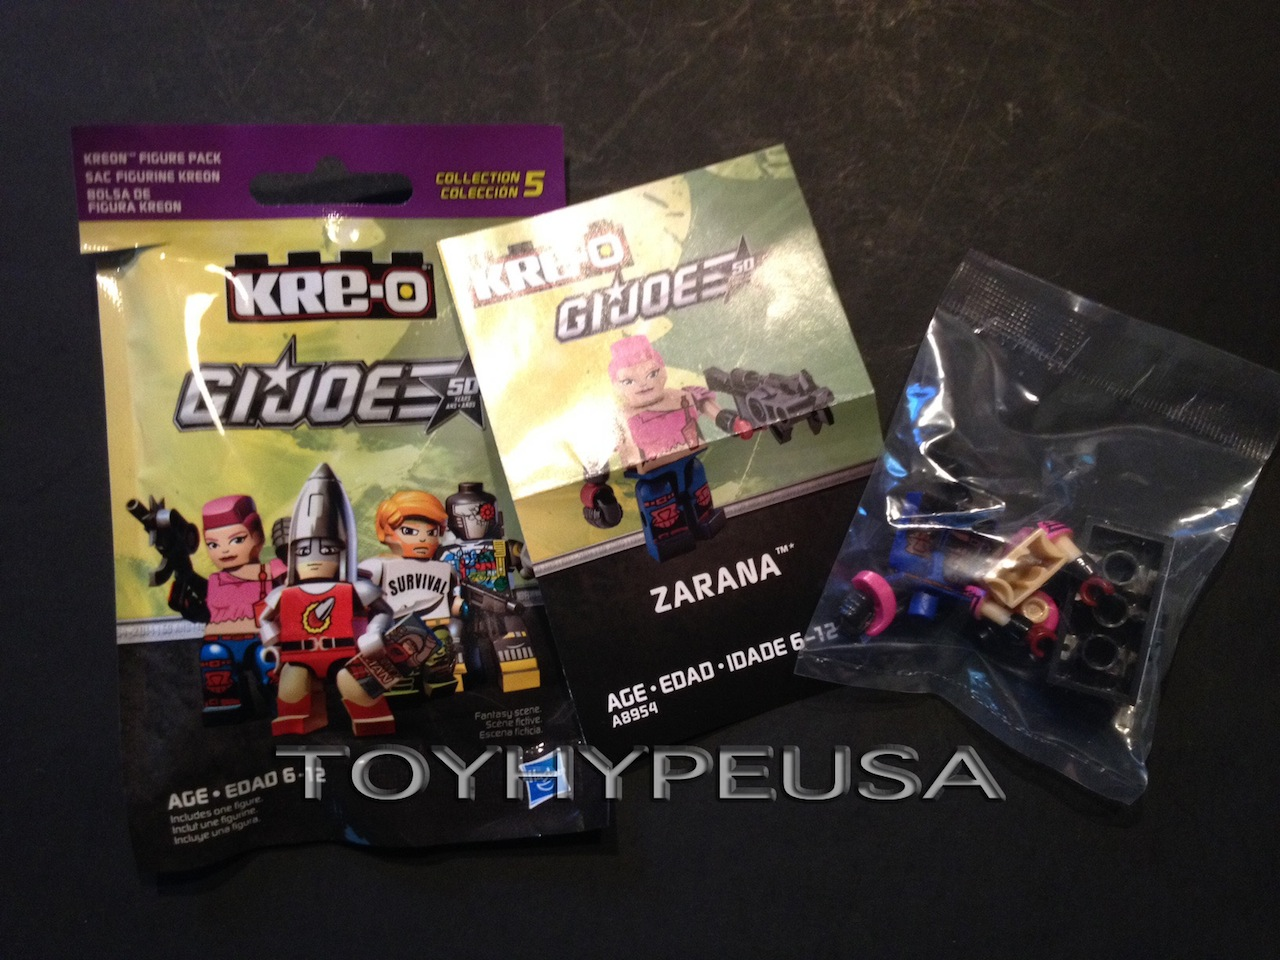 ToyHypeUSA Store – G.I. Joe Kre-O Collection 5 Figures Listed At $4.00 Each